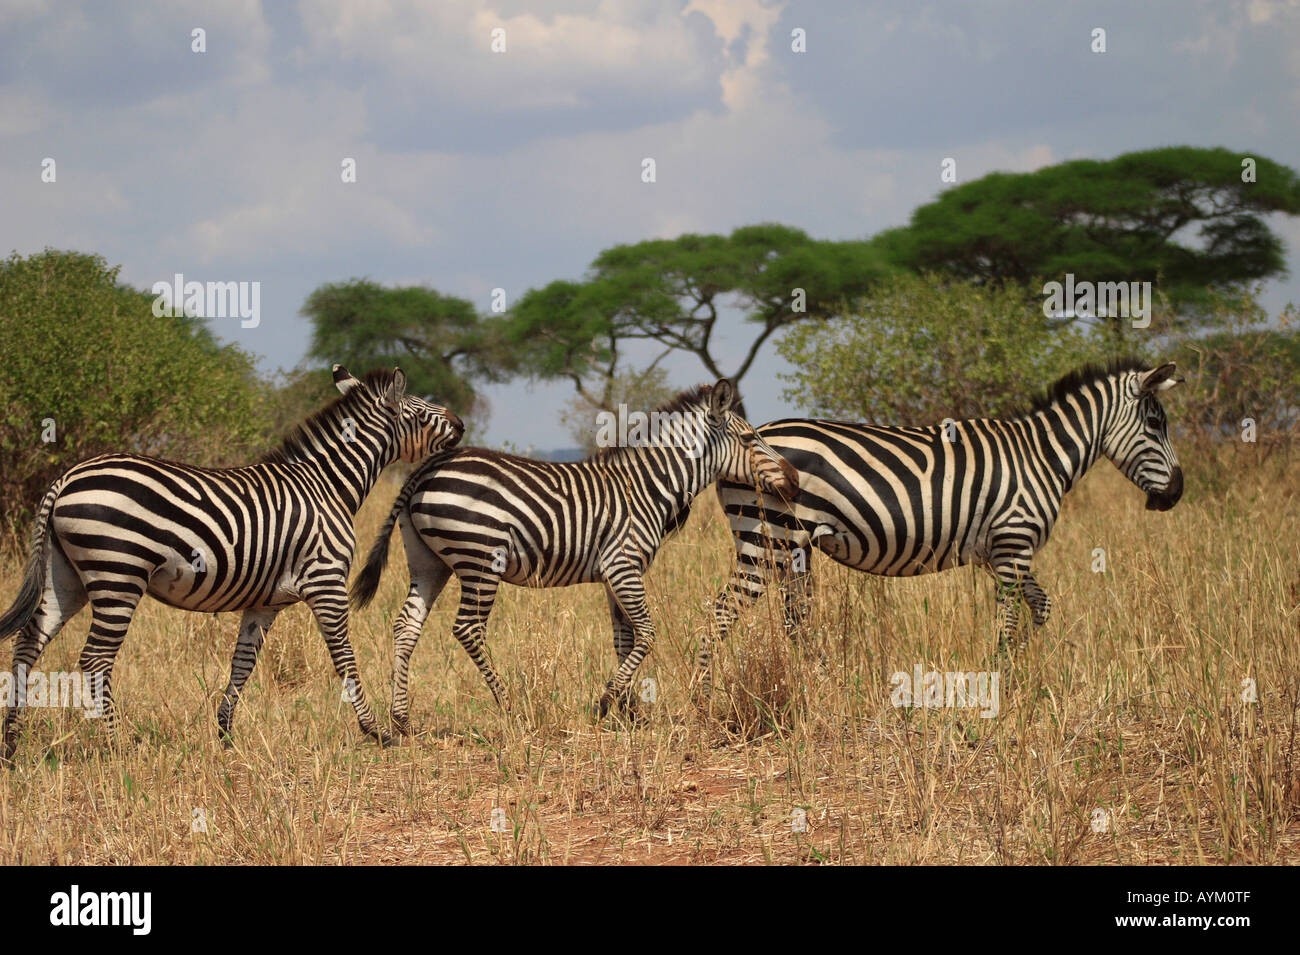 Three zebra walk head to tail in Tarangire National Park, Tanzania. - Stock Image